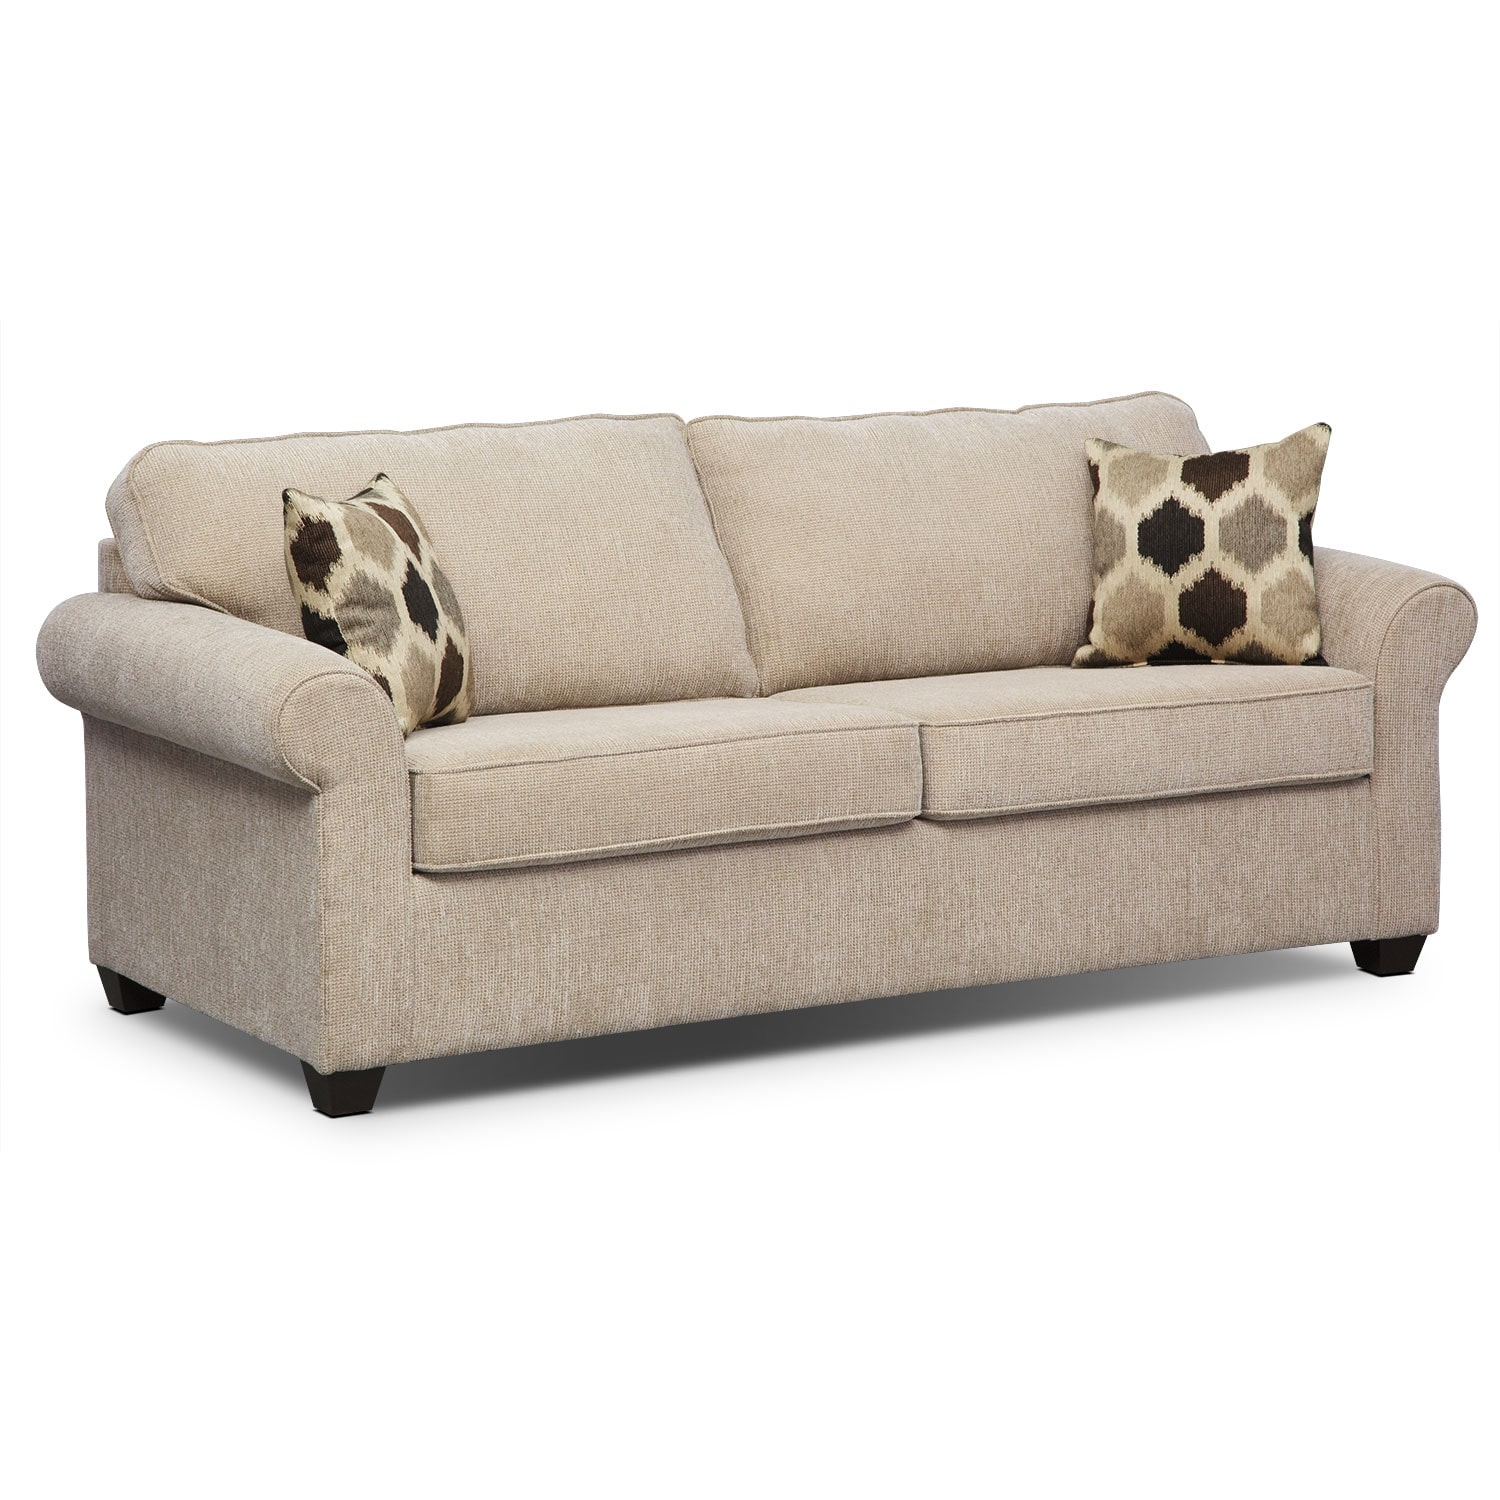 Fletcher Queen Memory Foam Sleeper Sofa Beige American